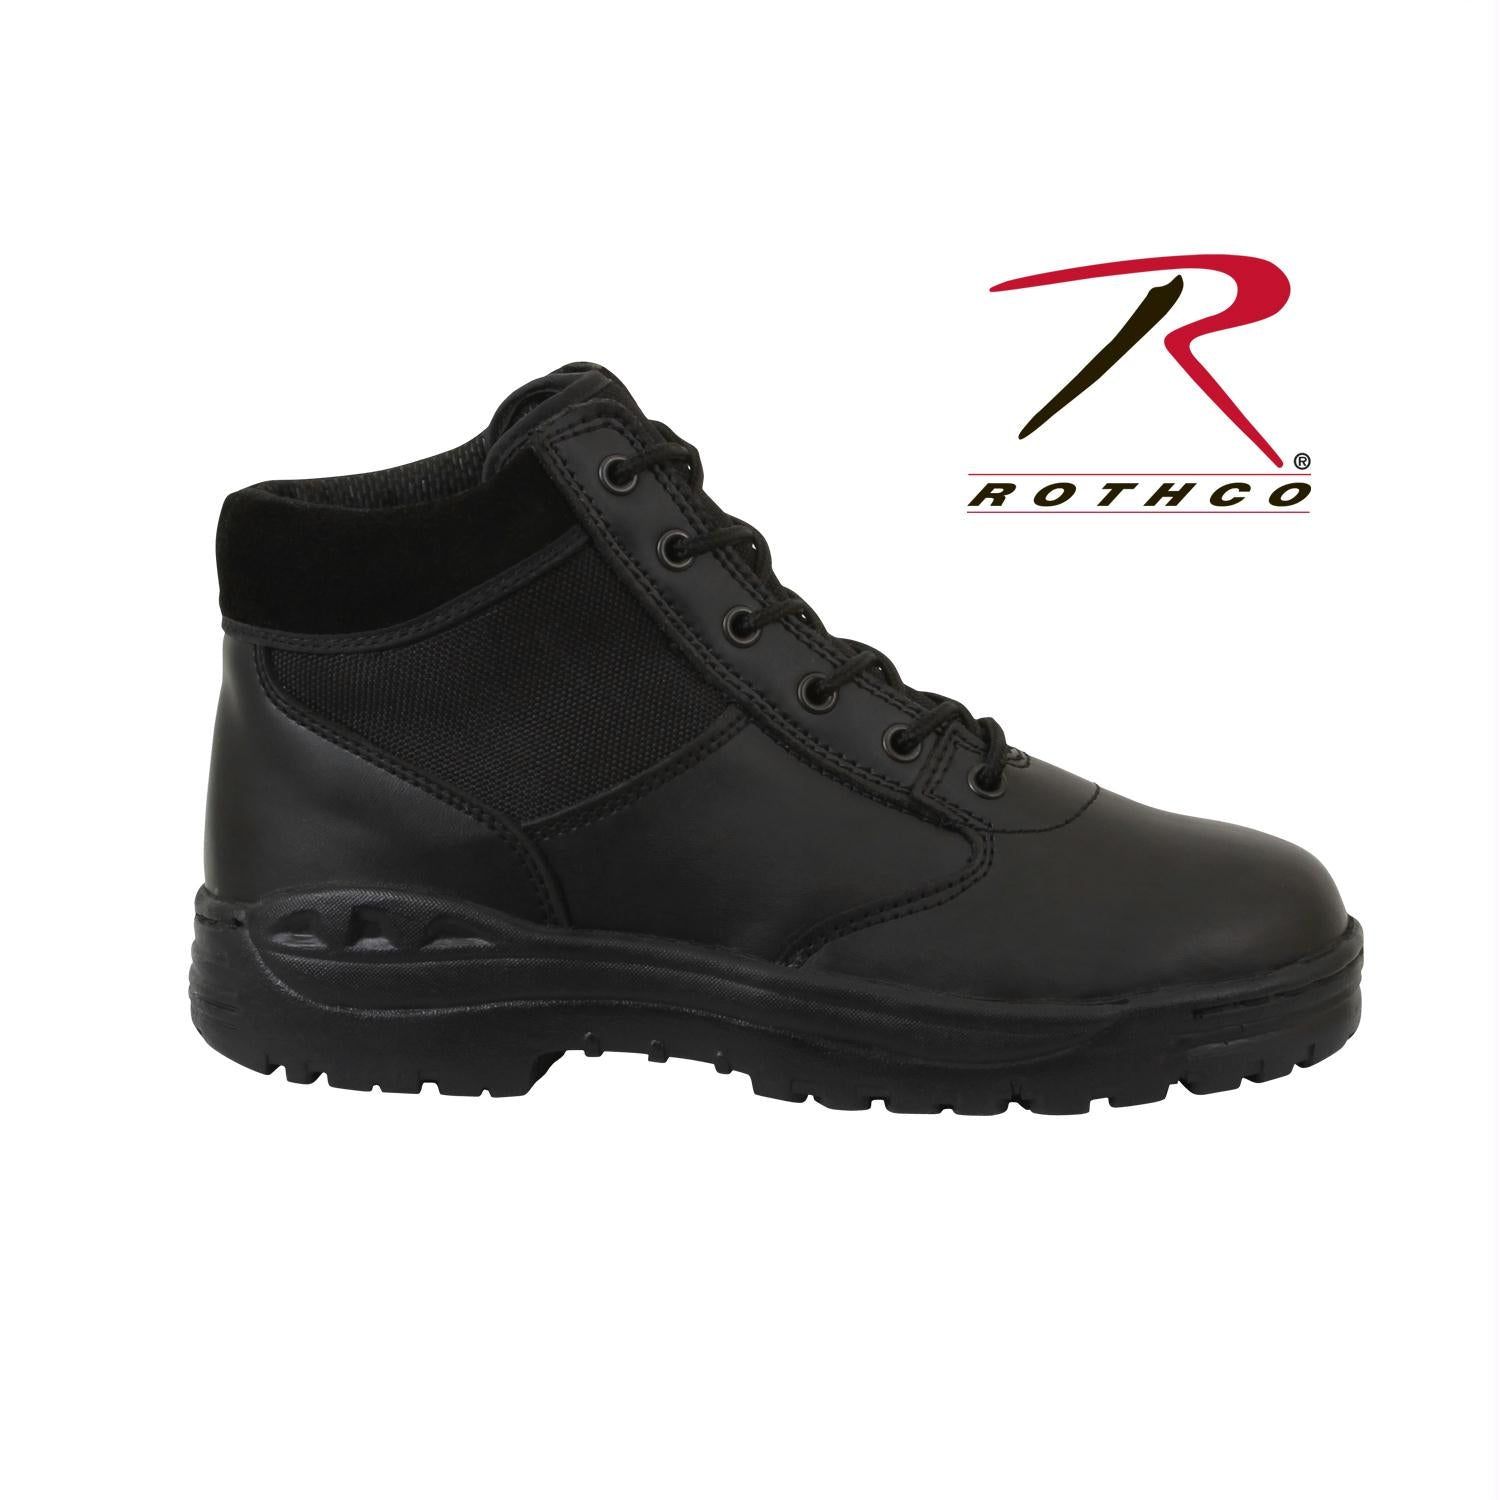 Rothco Forced Entry Security Boot / 6'' - 16